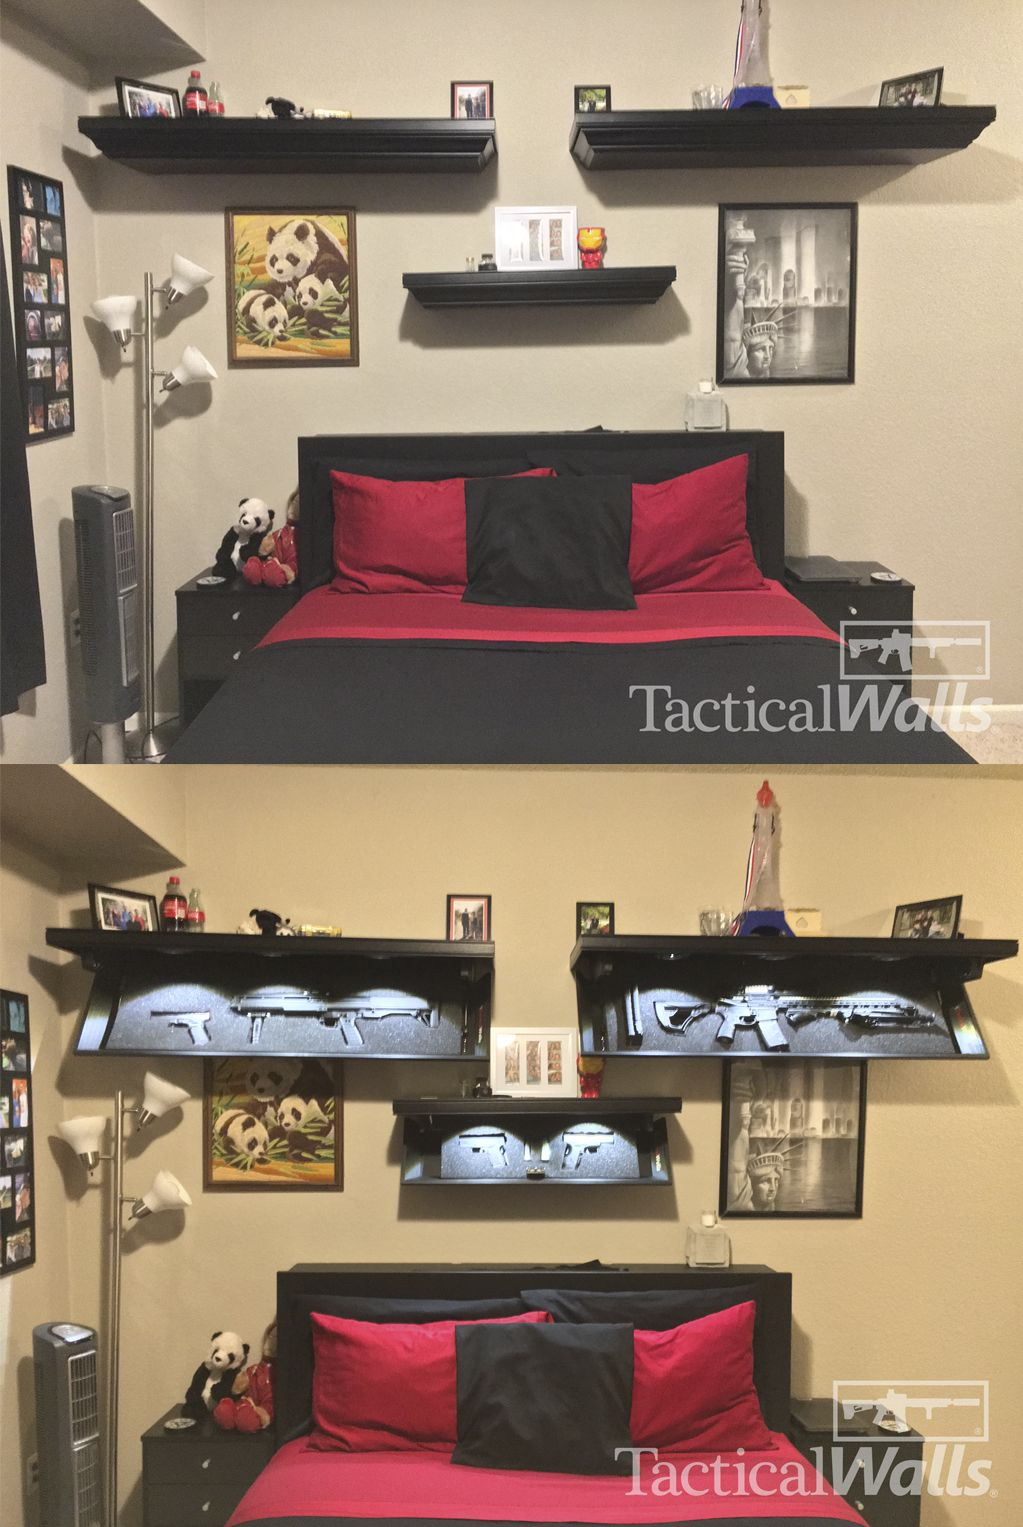 Decorate Like You Mean It With The Tactical Walls 1242 Shelves